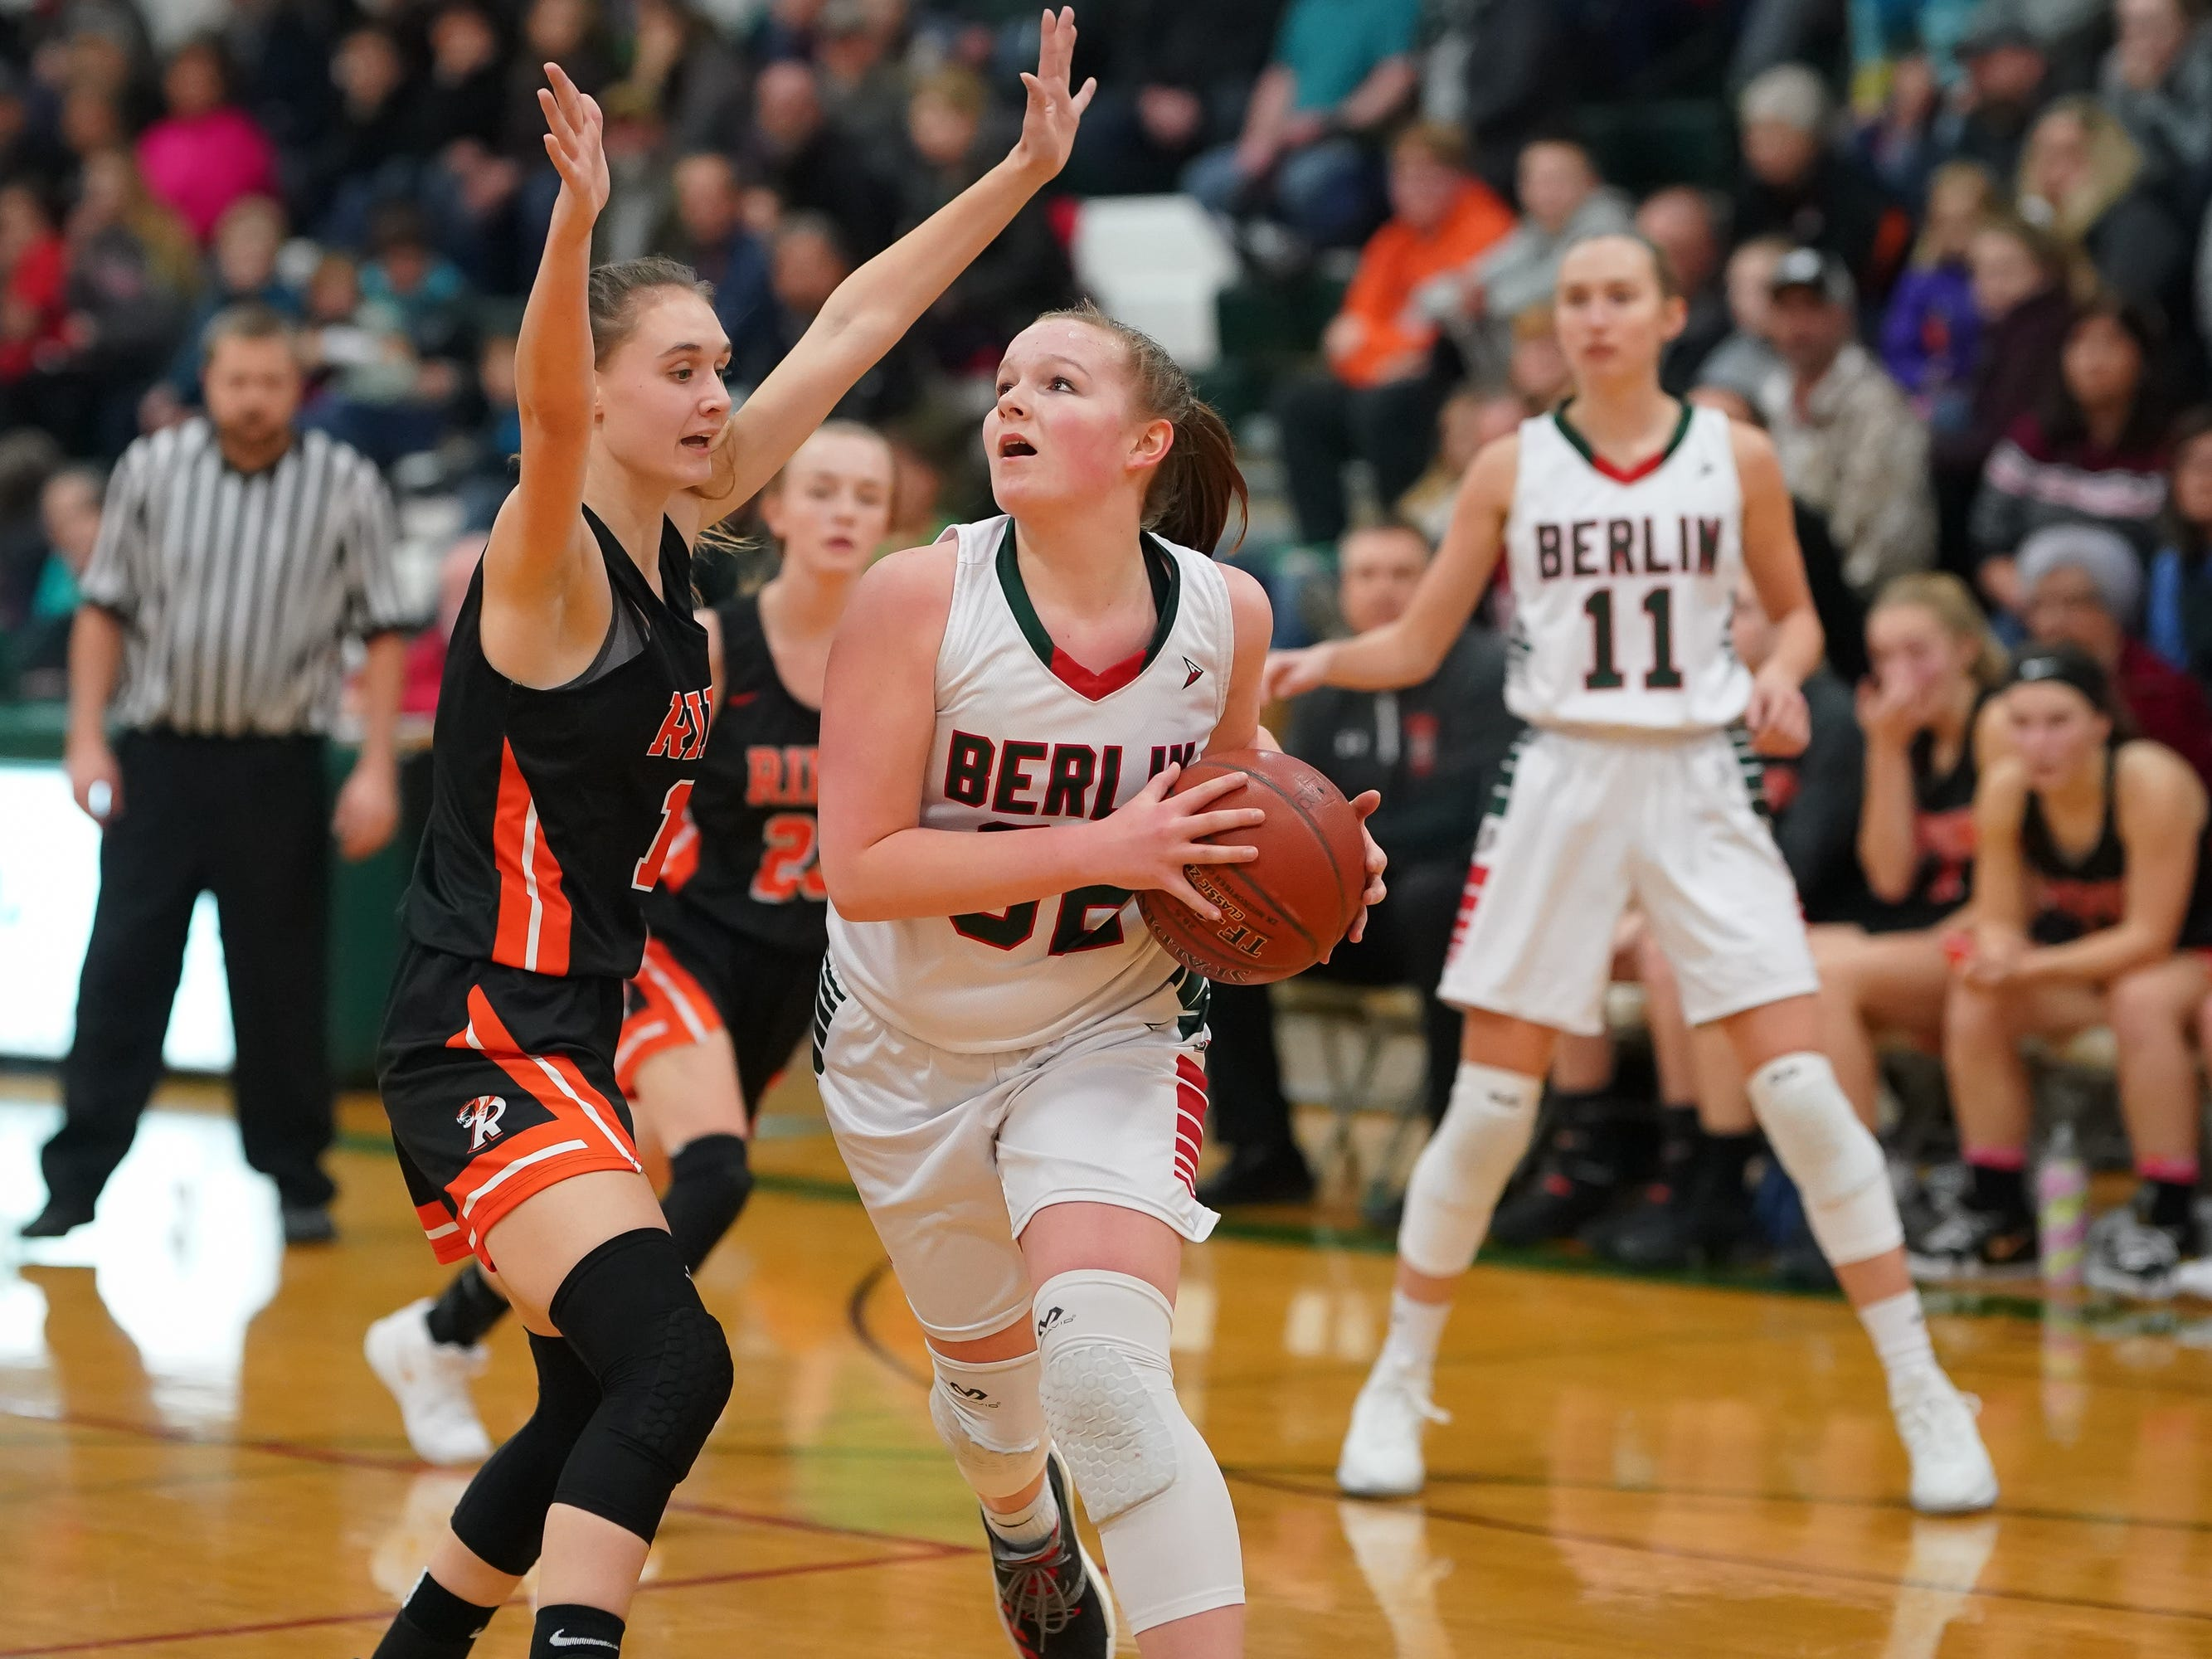 Jenna Sternitske (32) of Berlin drives around Alexa Miller (11) of Ripon. The Berlin Indians hosted the Ripon Tigers in an East Central Conference girls basketball matchup Friday evening, December 21, 2018.